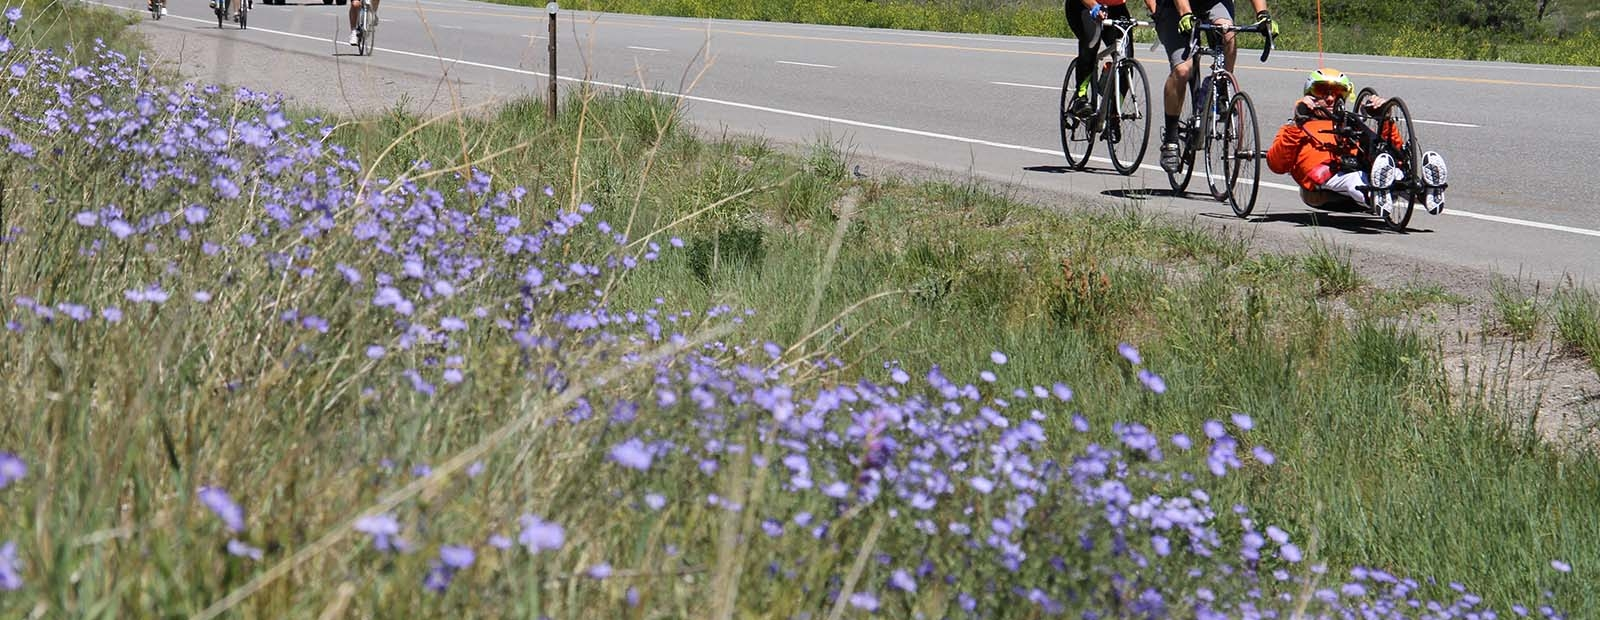 A participant rides on the road in Ride the Rockies